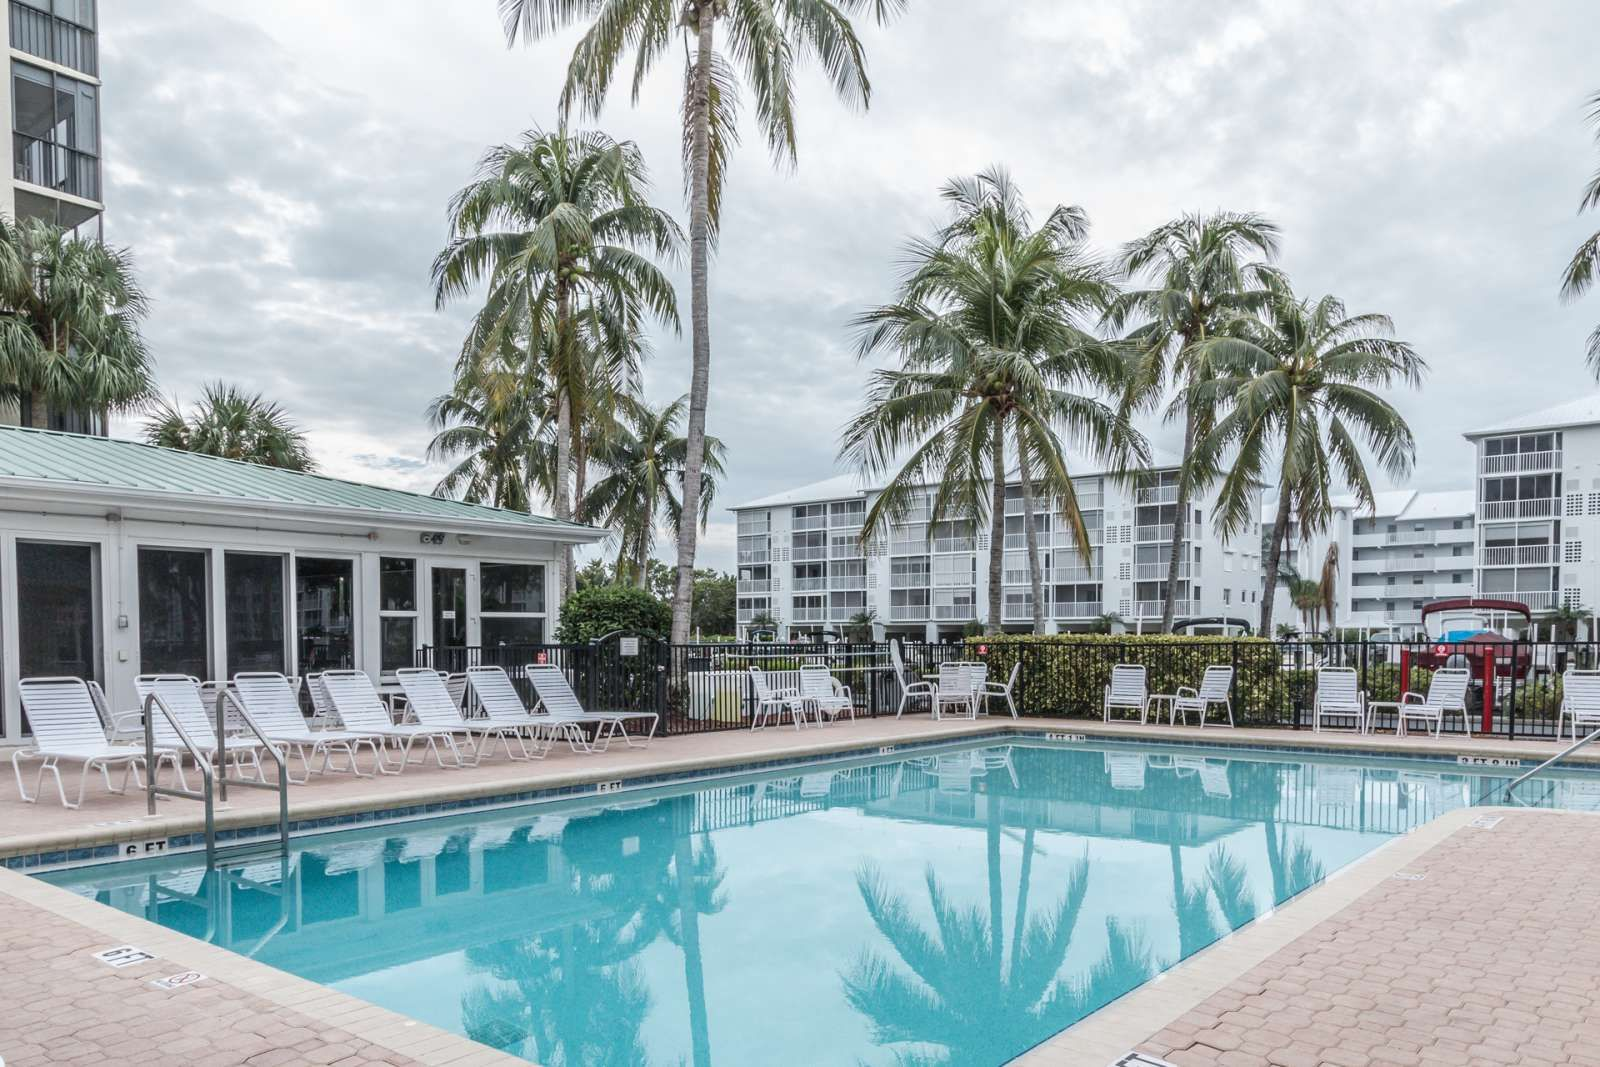 Fort myers beach beach vacation rentals vacation